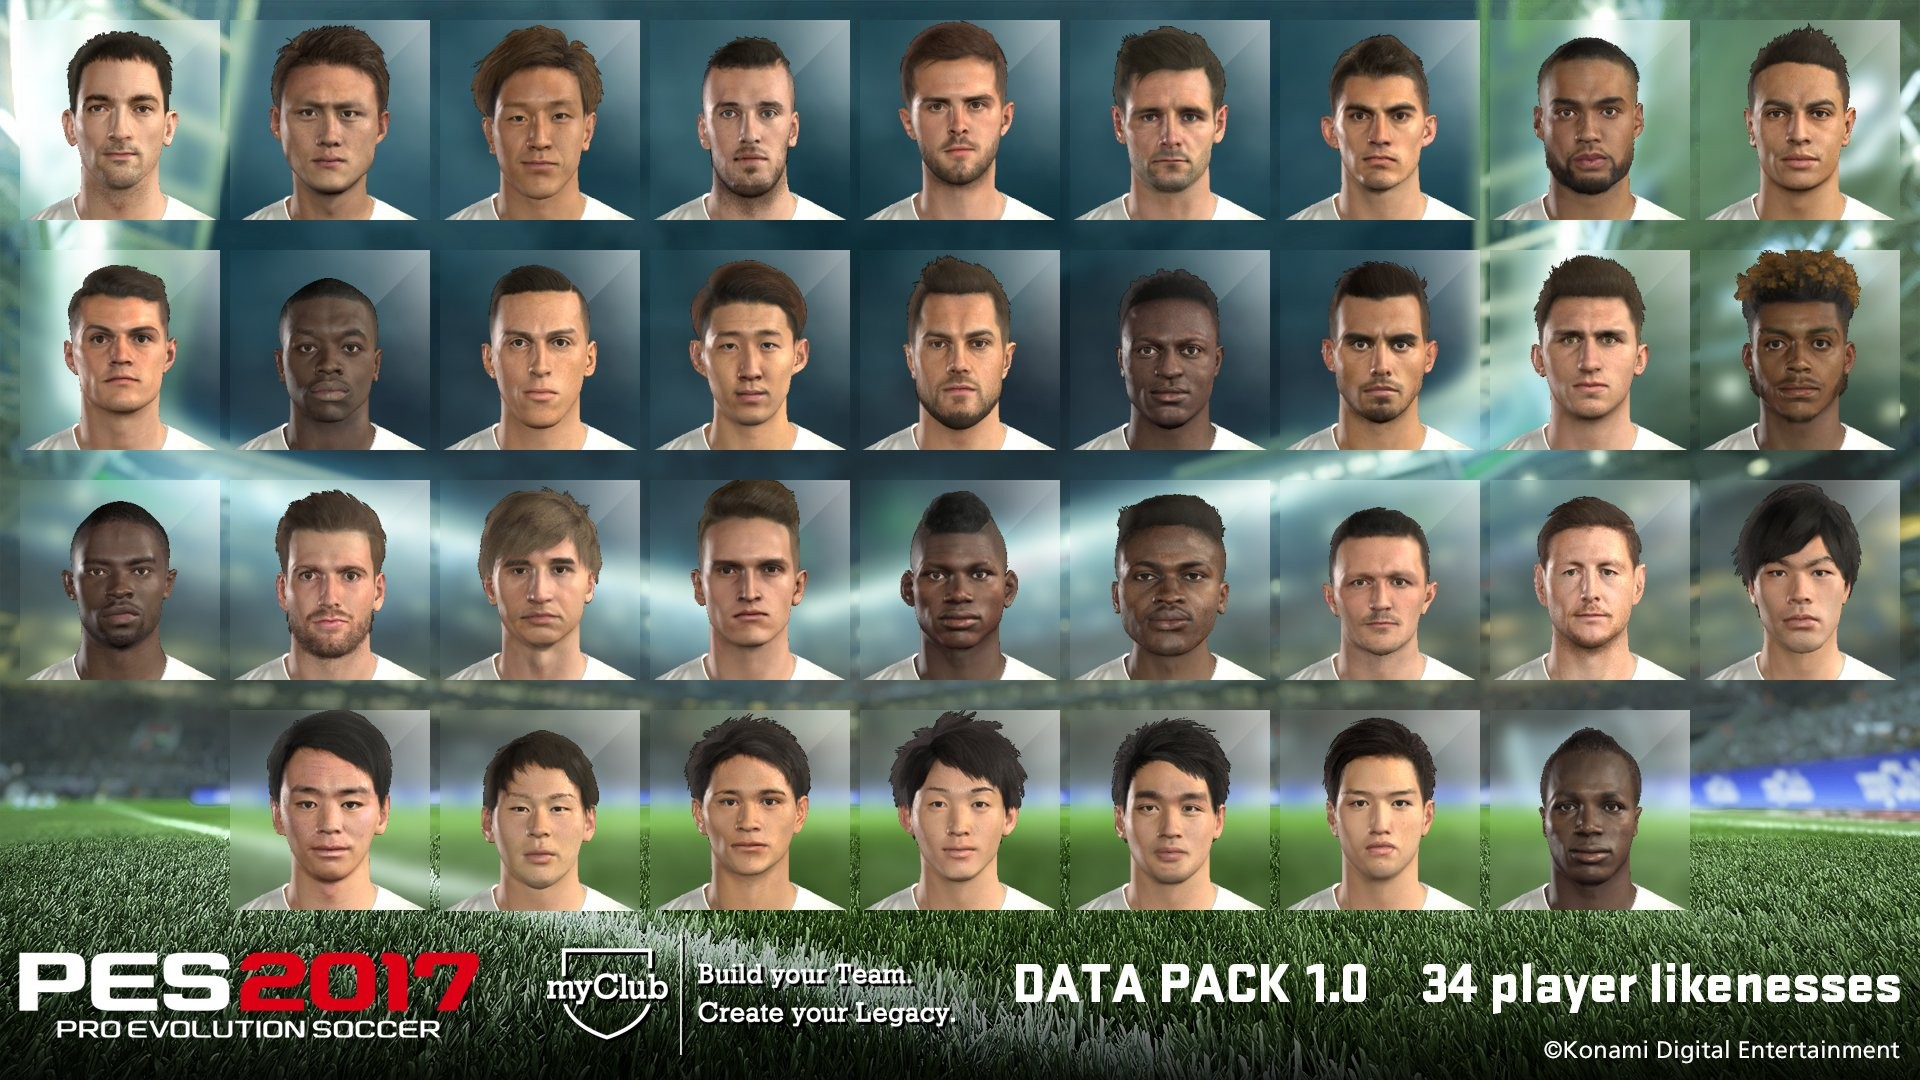 PES 2017 Patch 1 02 & Data Pack 1 Available, Here Are The